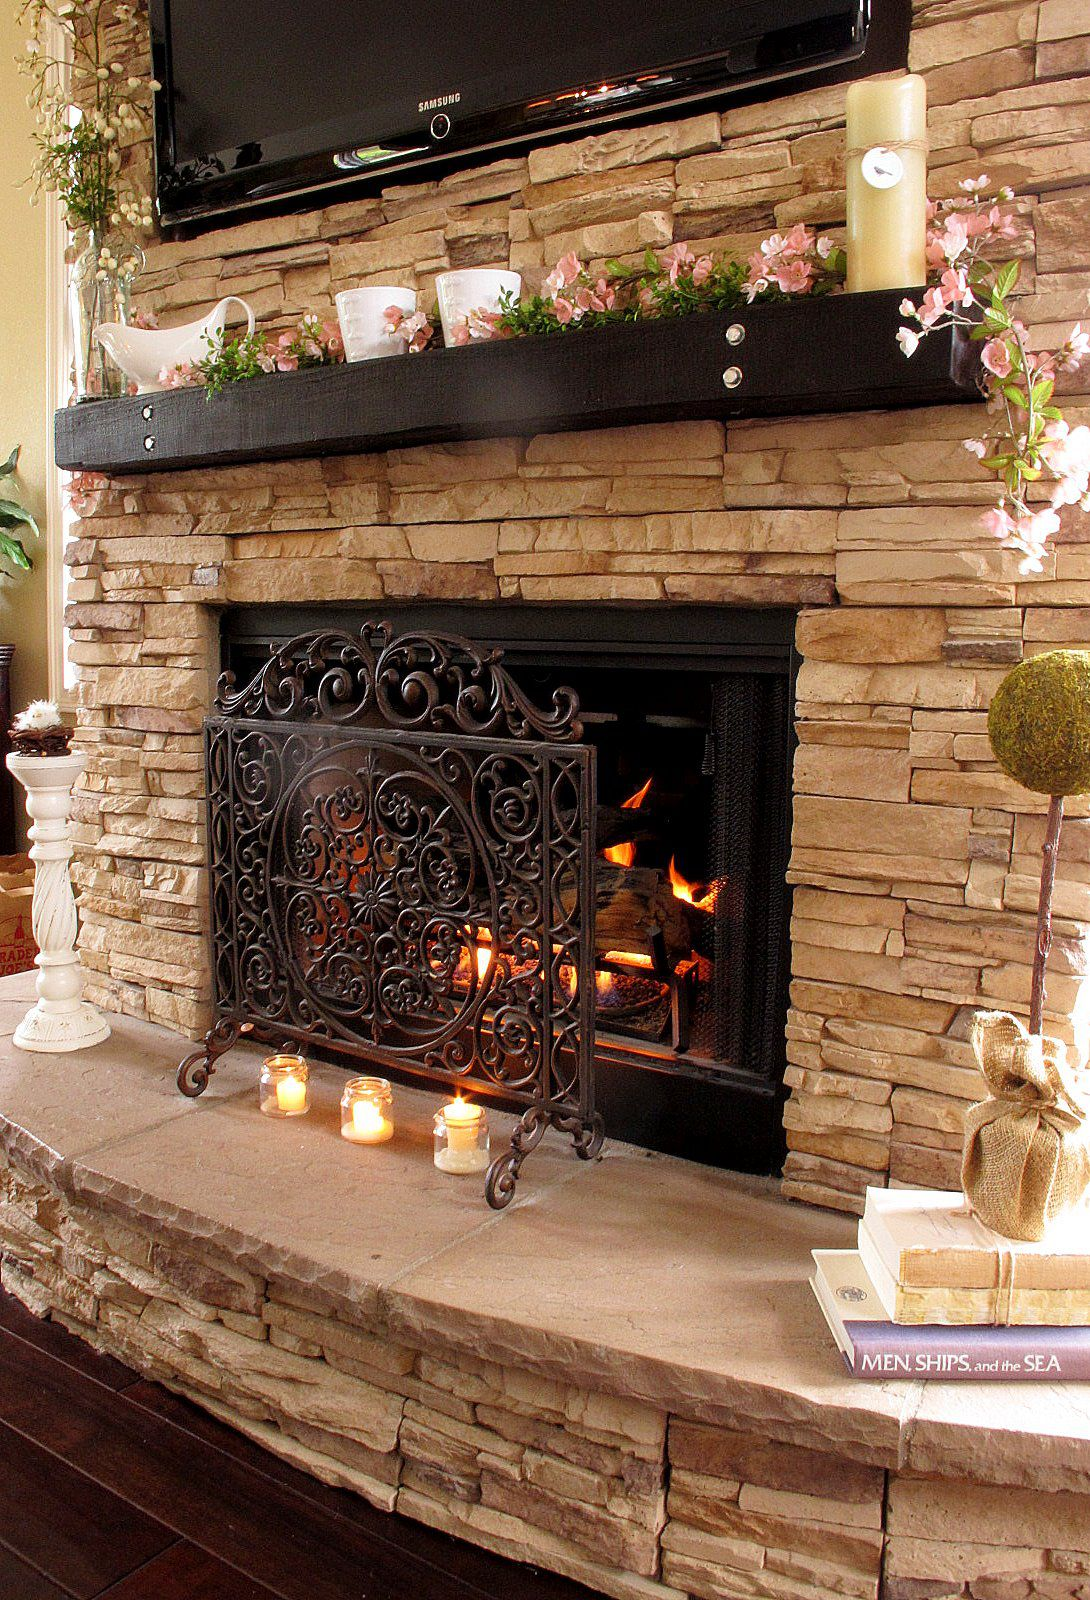 Comely Flower Accent close Large Stone Wall plus Chic Accessory